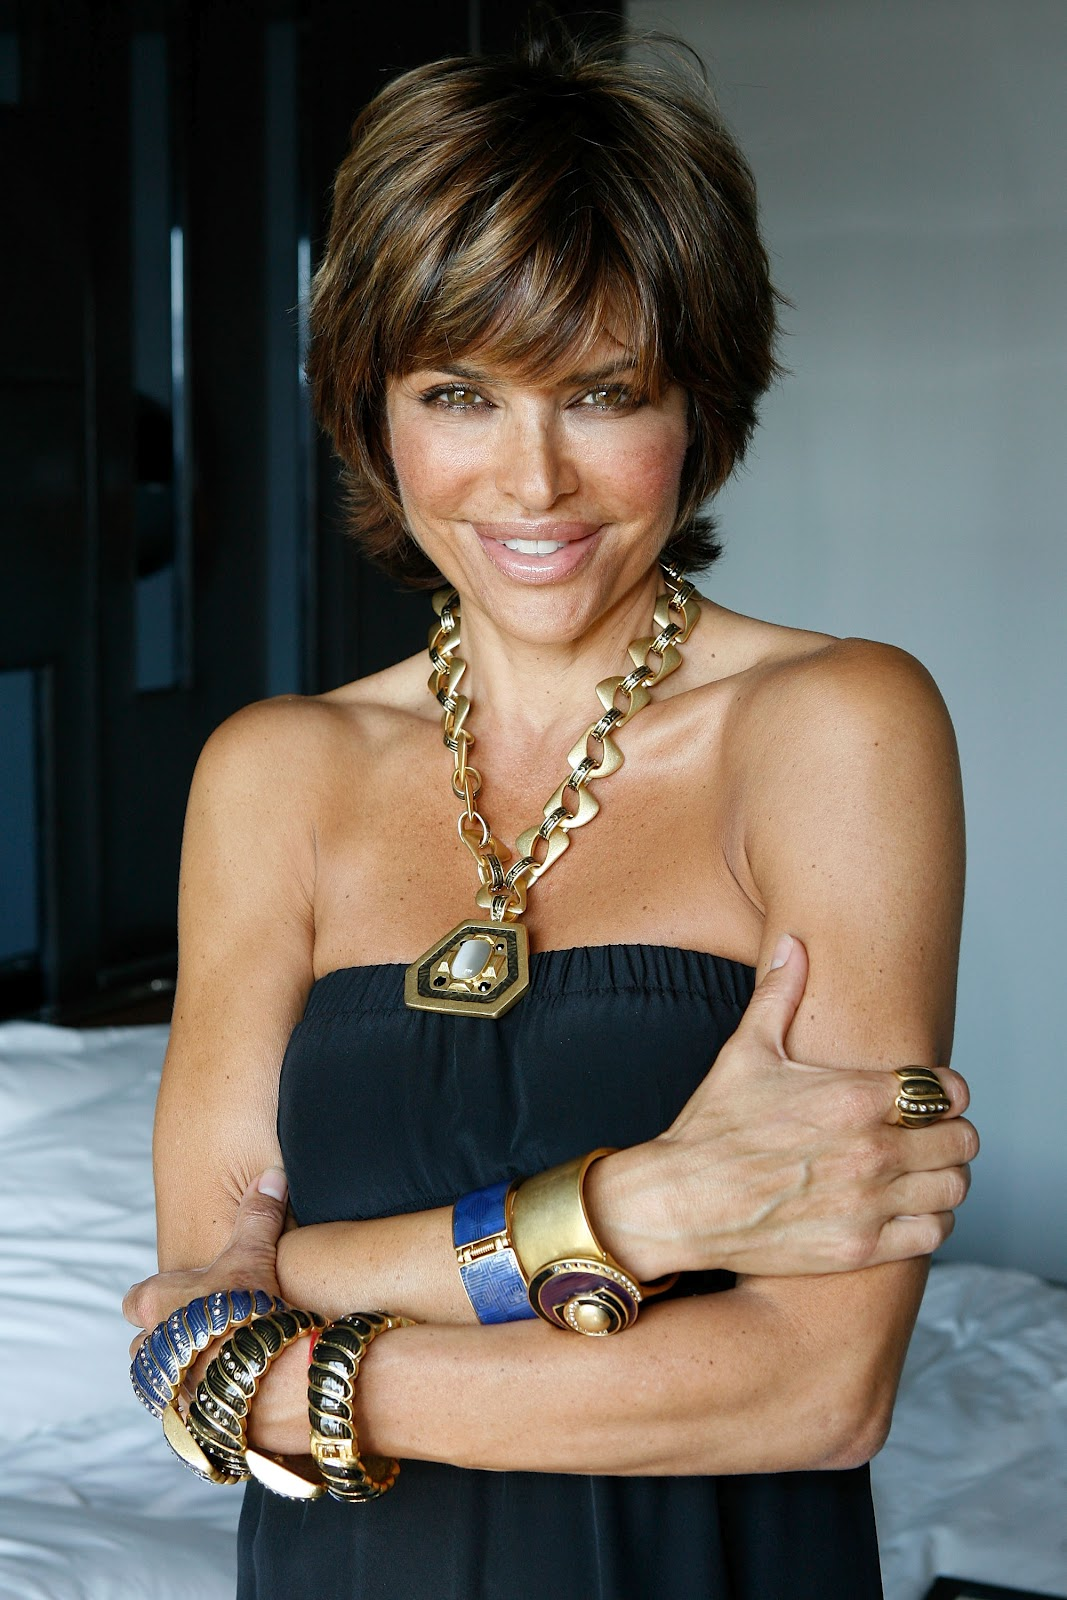 Lisa Rinna Hairstyle Trends Lisa Rinna Hairstyle Trends